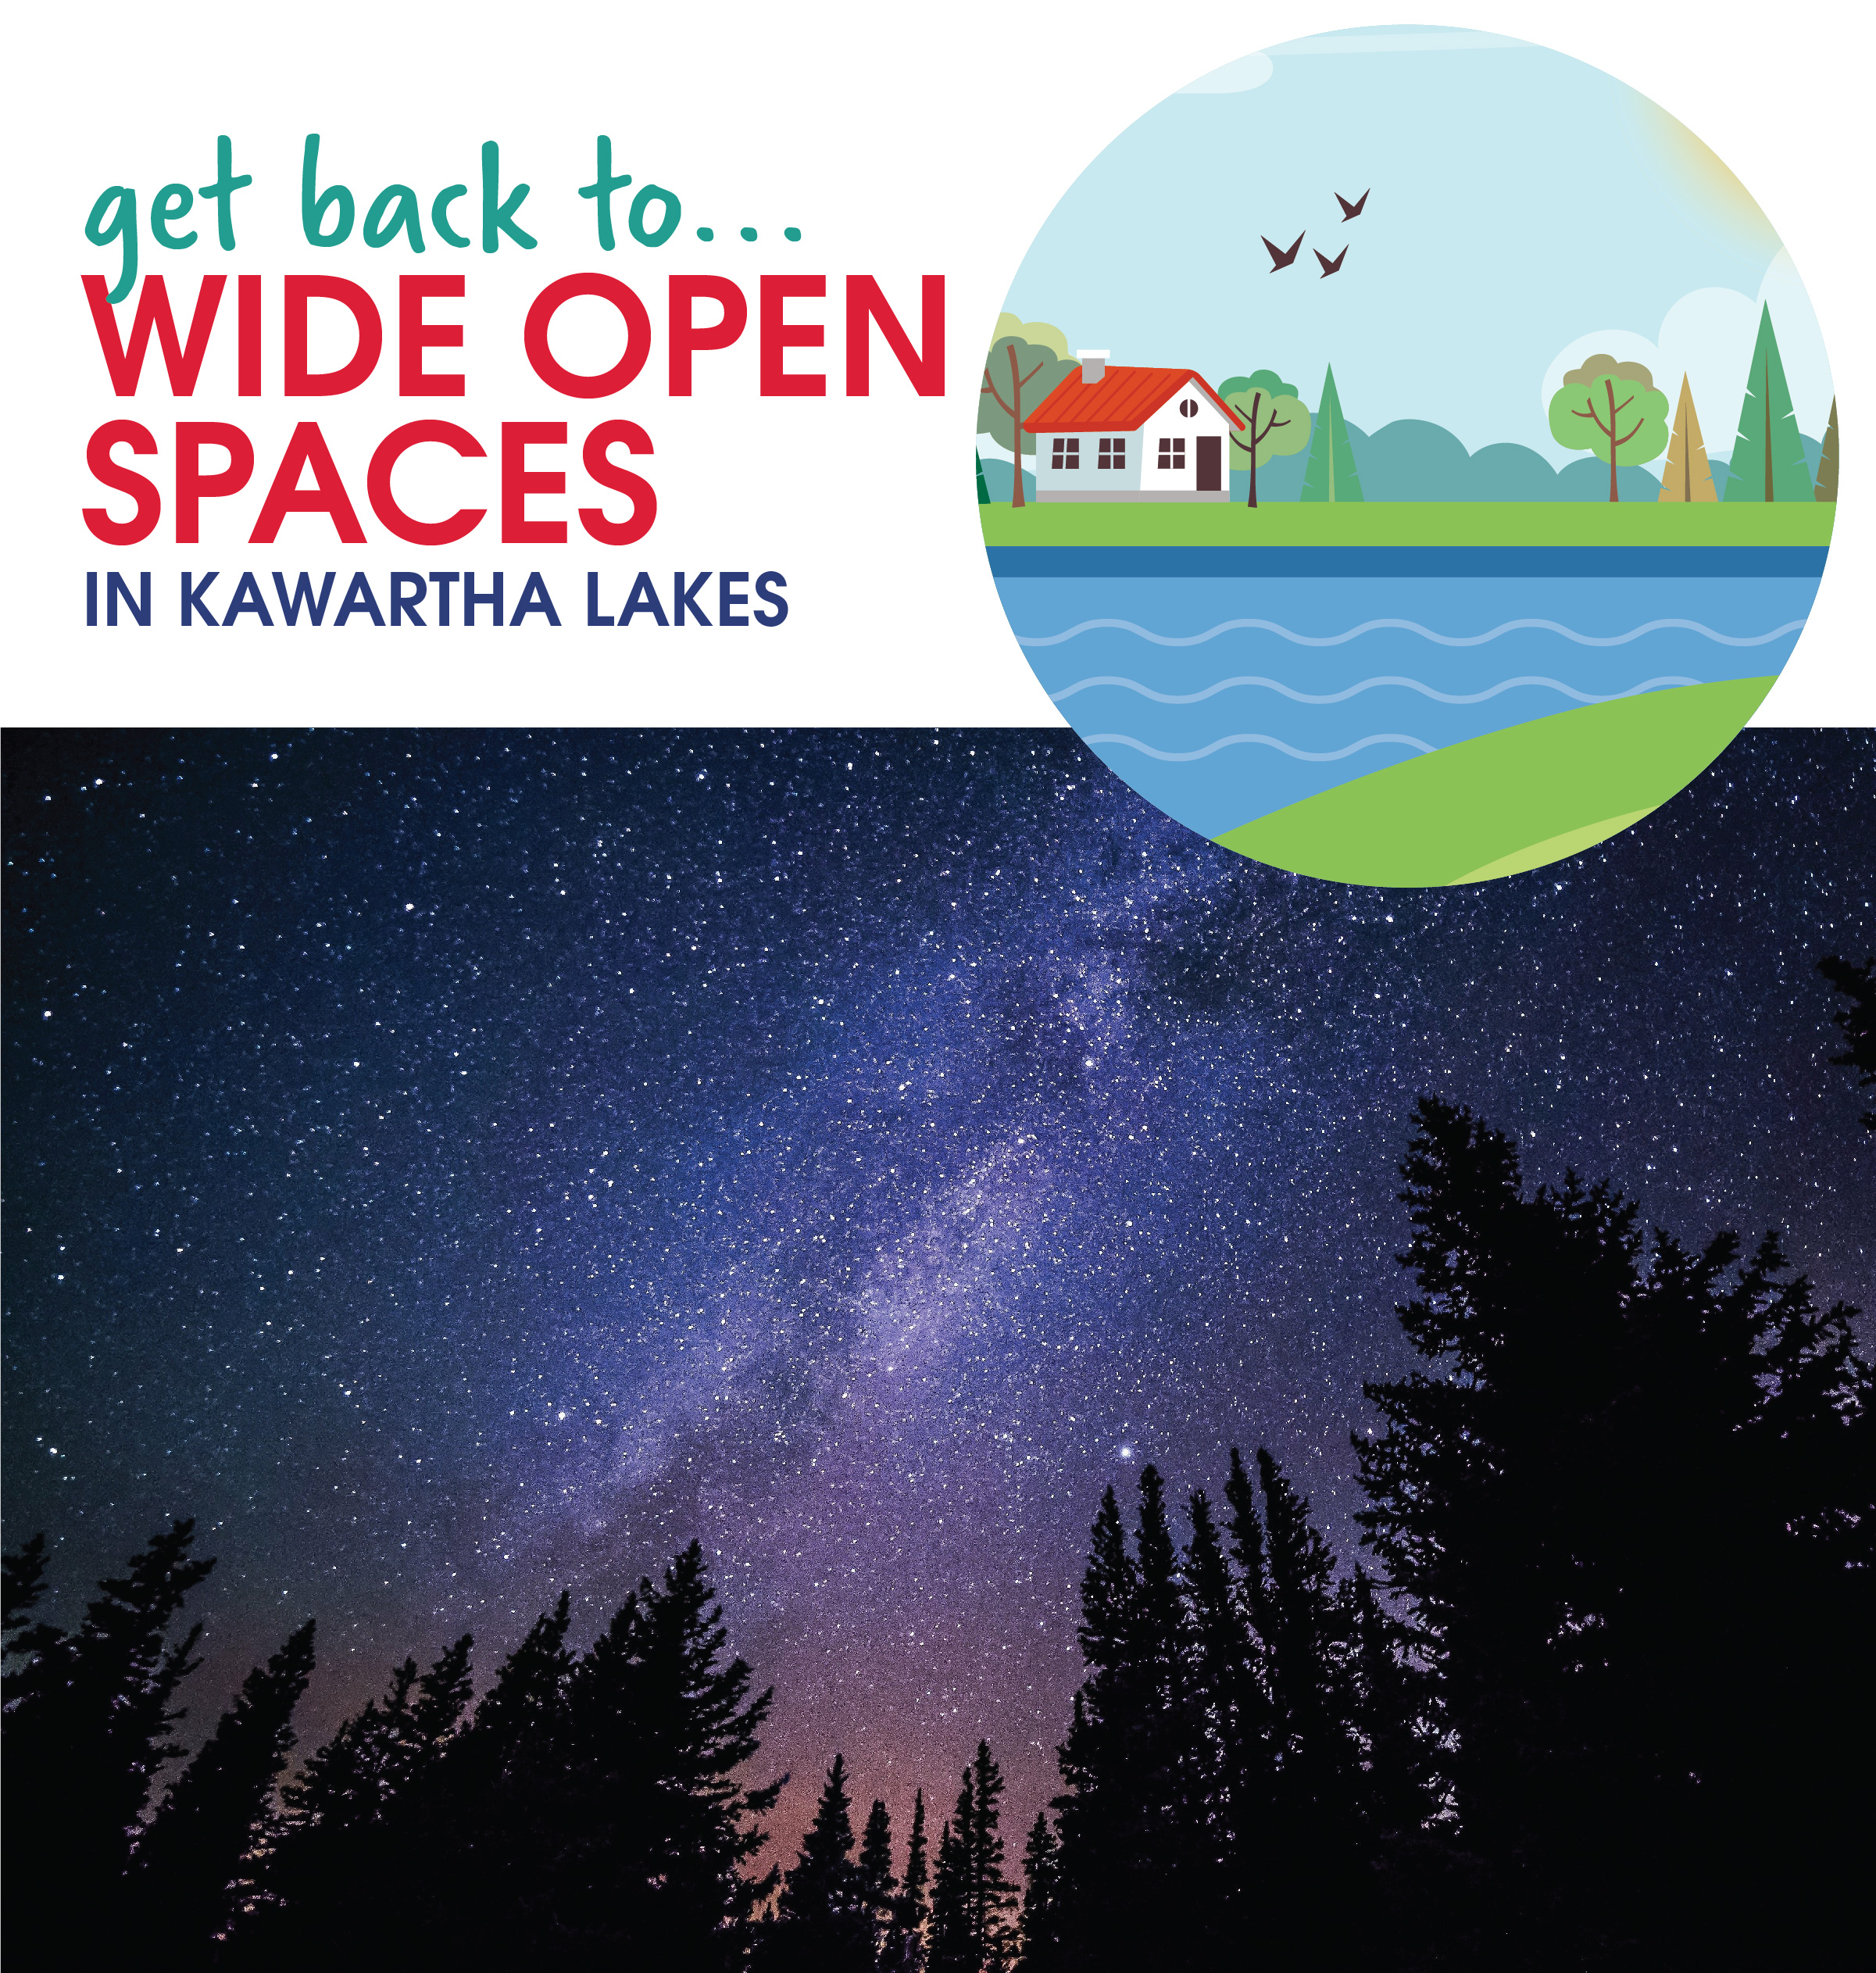 Get back to wide open spaces in Kawartha Lakes